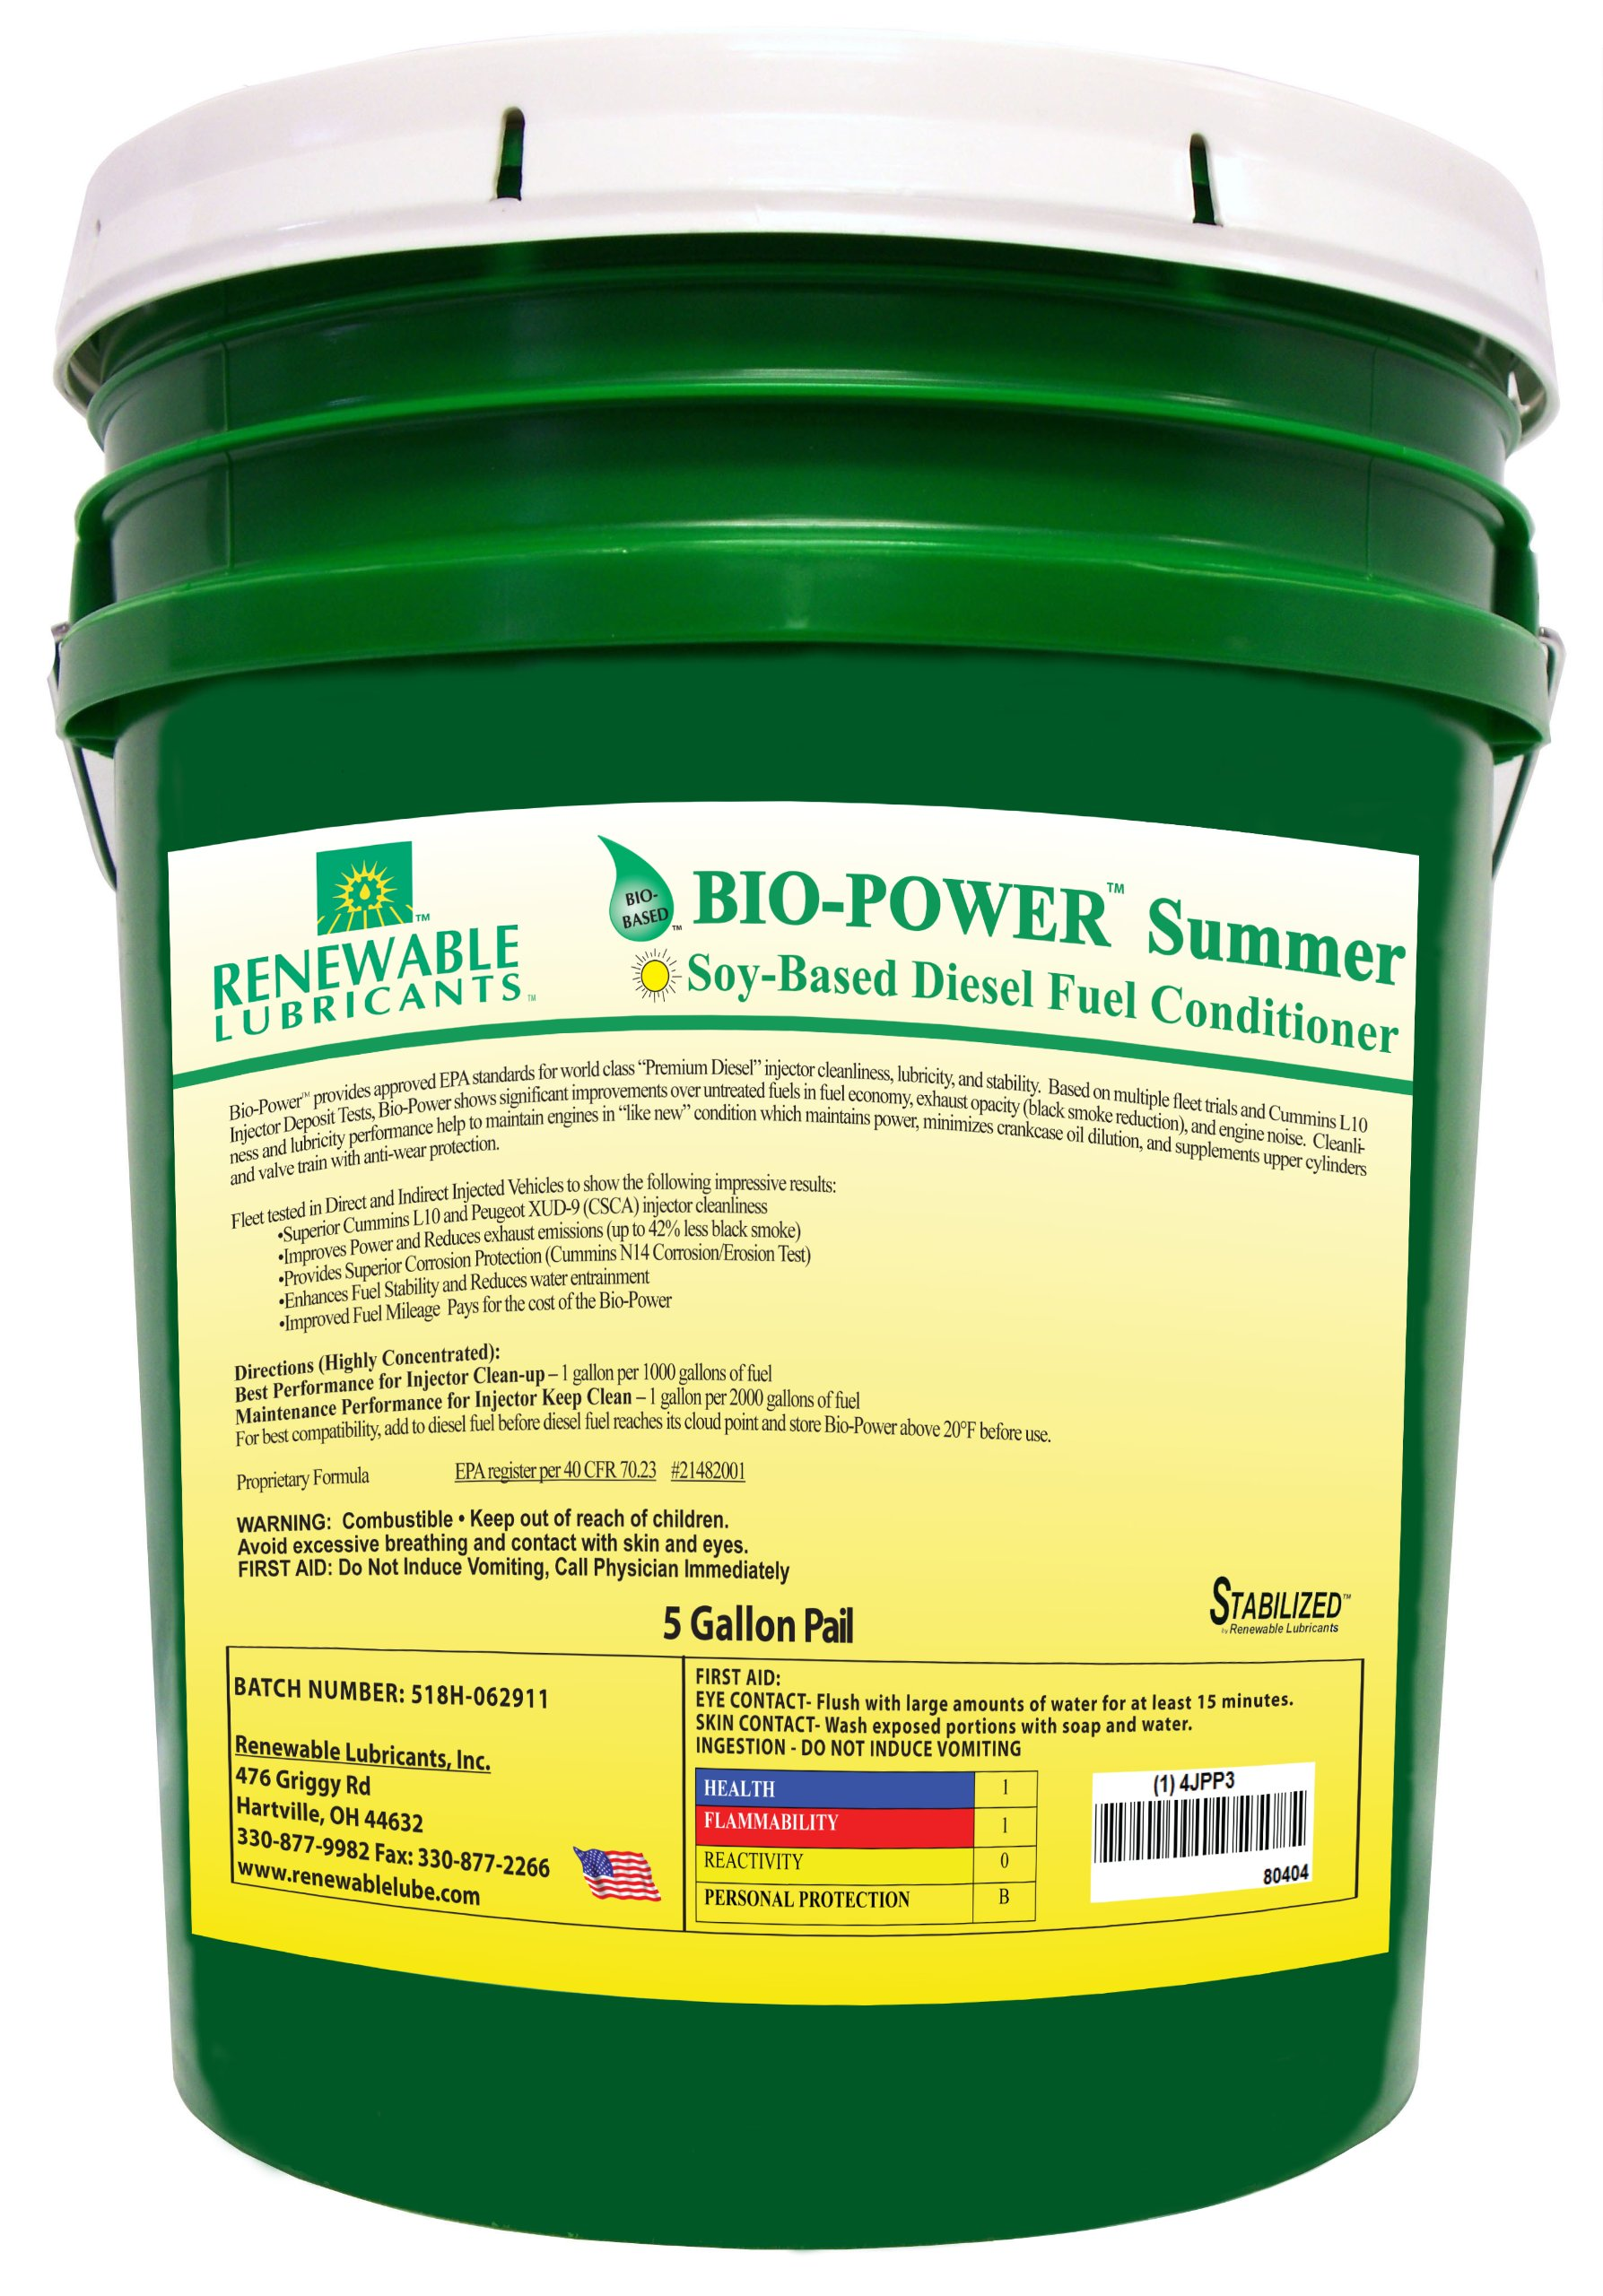 Renewable Lubricants Bio-Power Summer Diesel Fuel Conditioner, 5 Gallon Pail by Renewable Lubricants